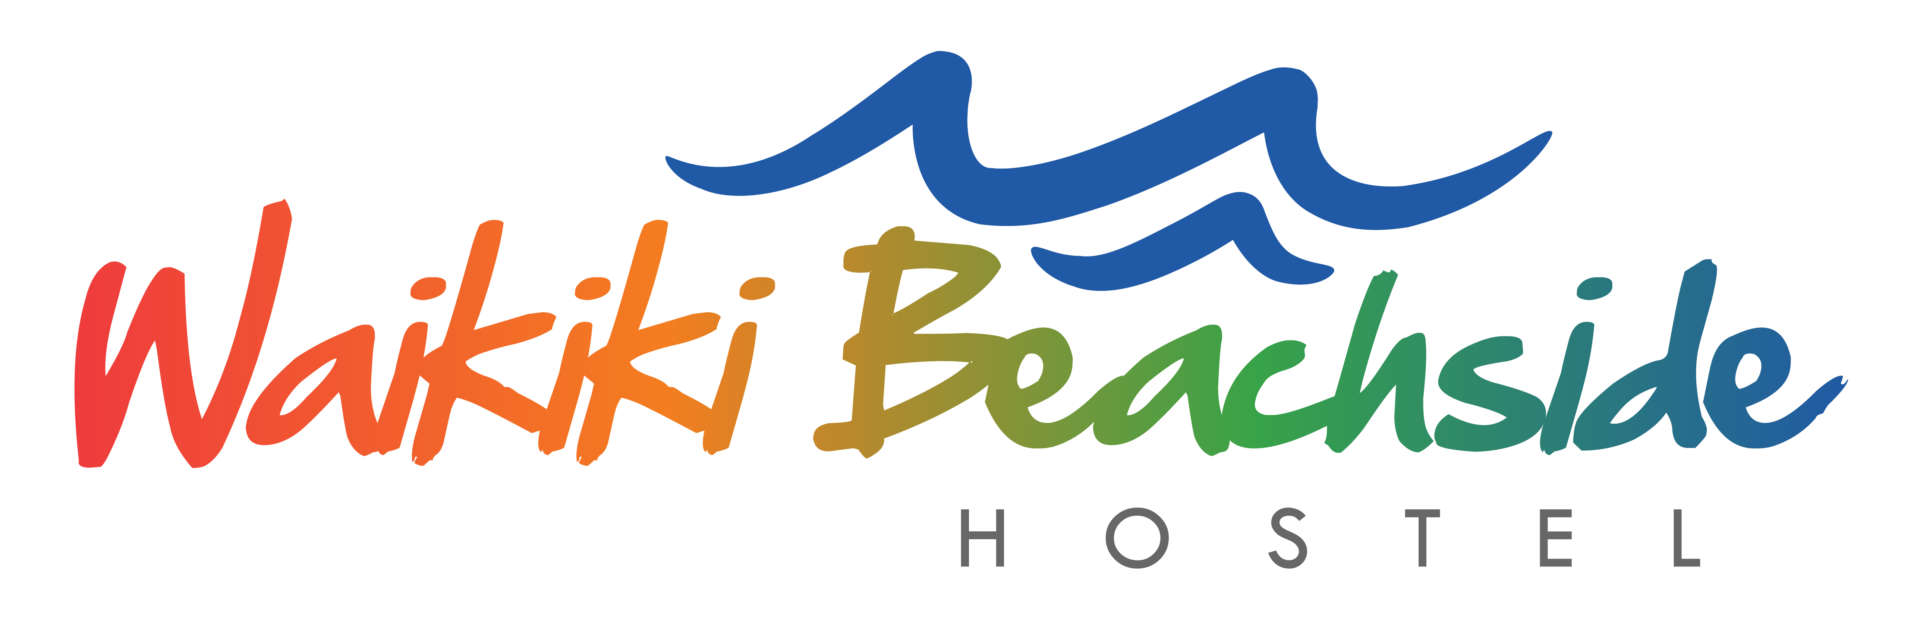 waikiki beachside hostel brand logo